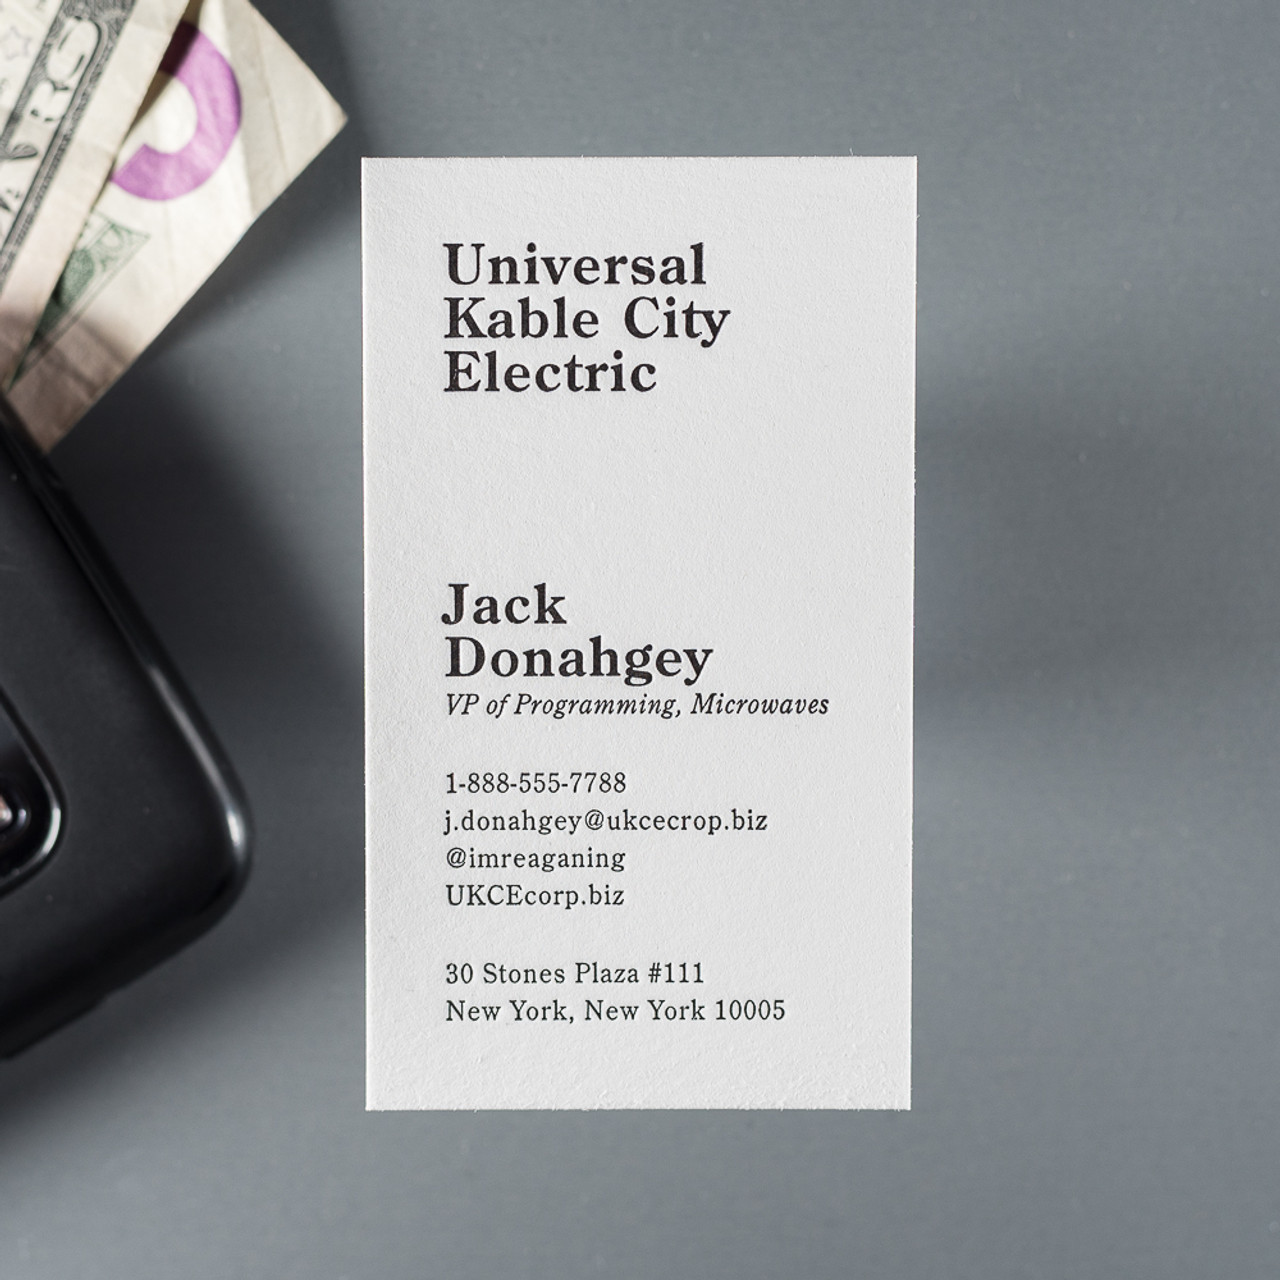 The Business Card - THE MANDATE PRESS